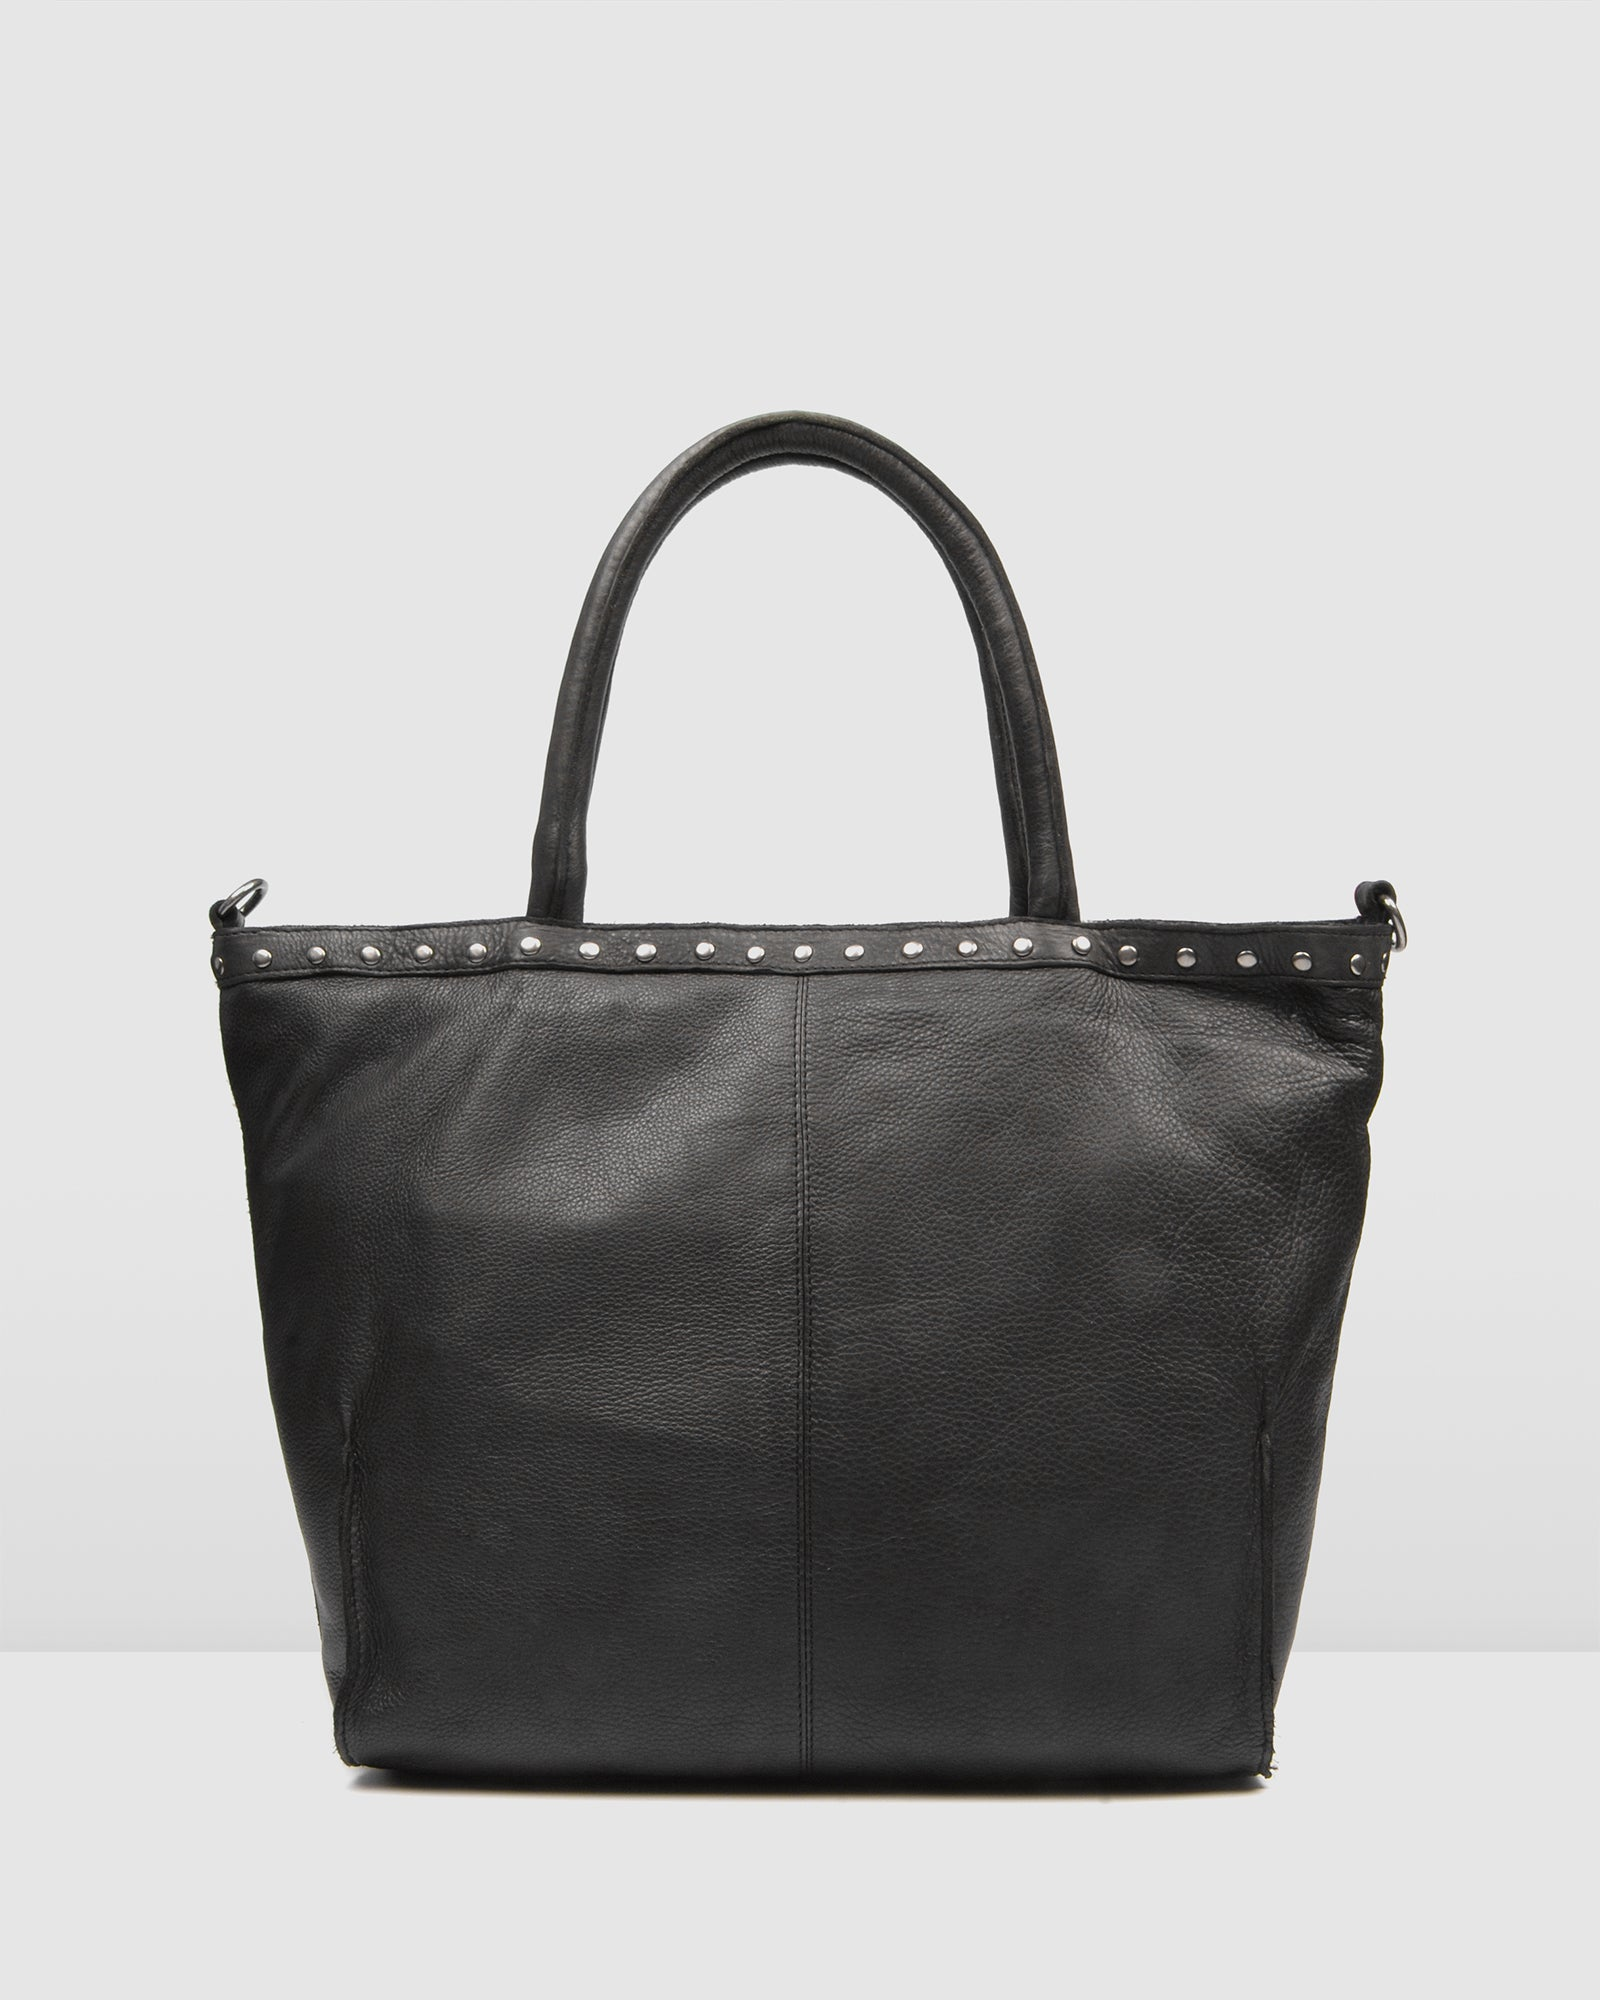 BISMARCK SHOPPER BLACK